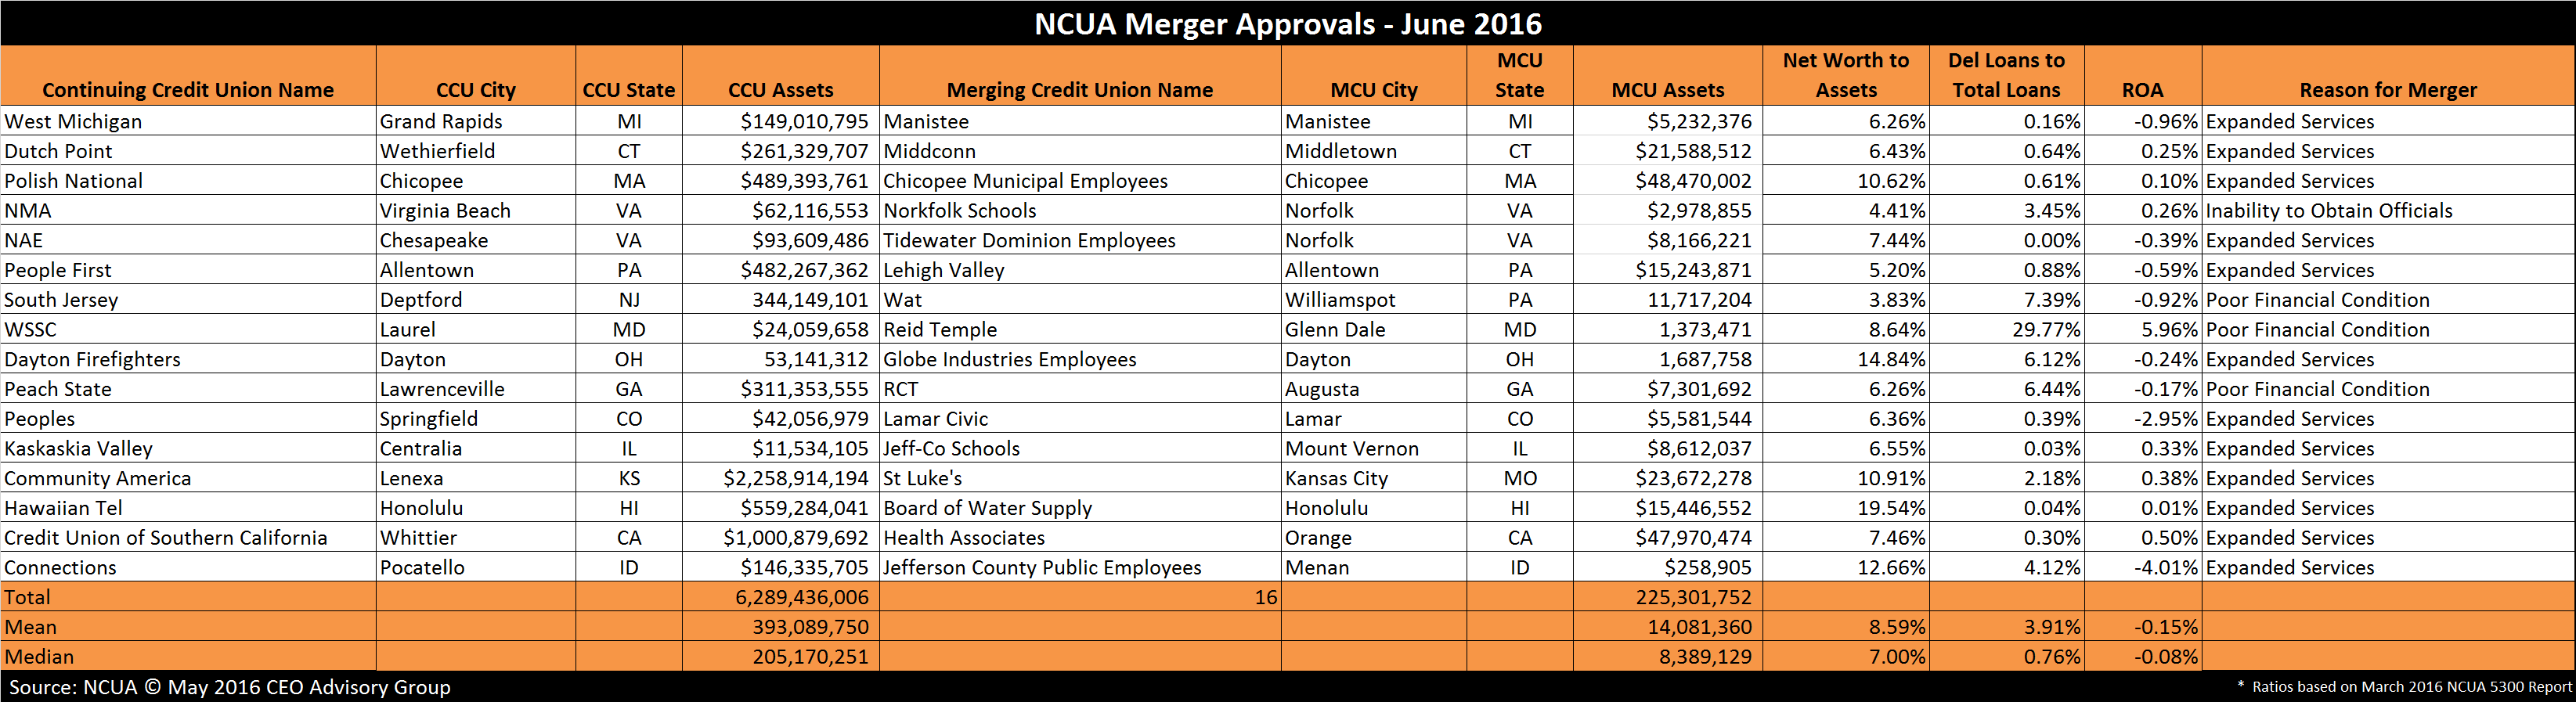 Credit Union Mergers June 2016